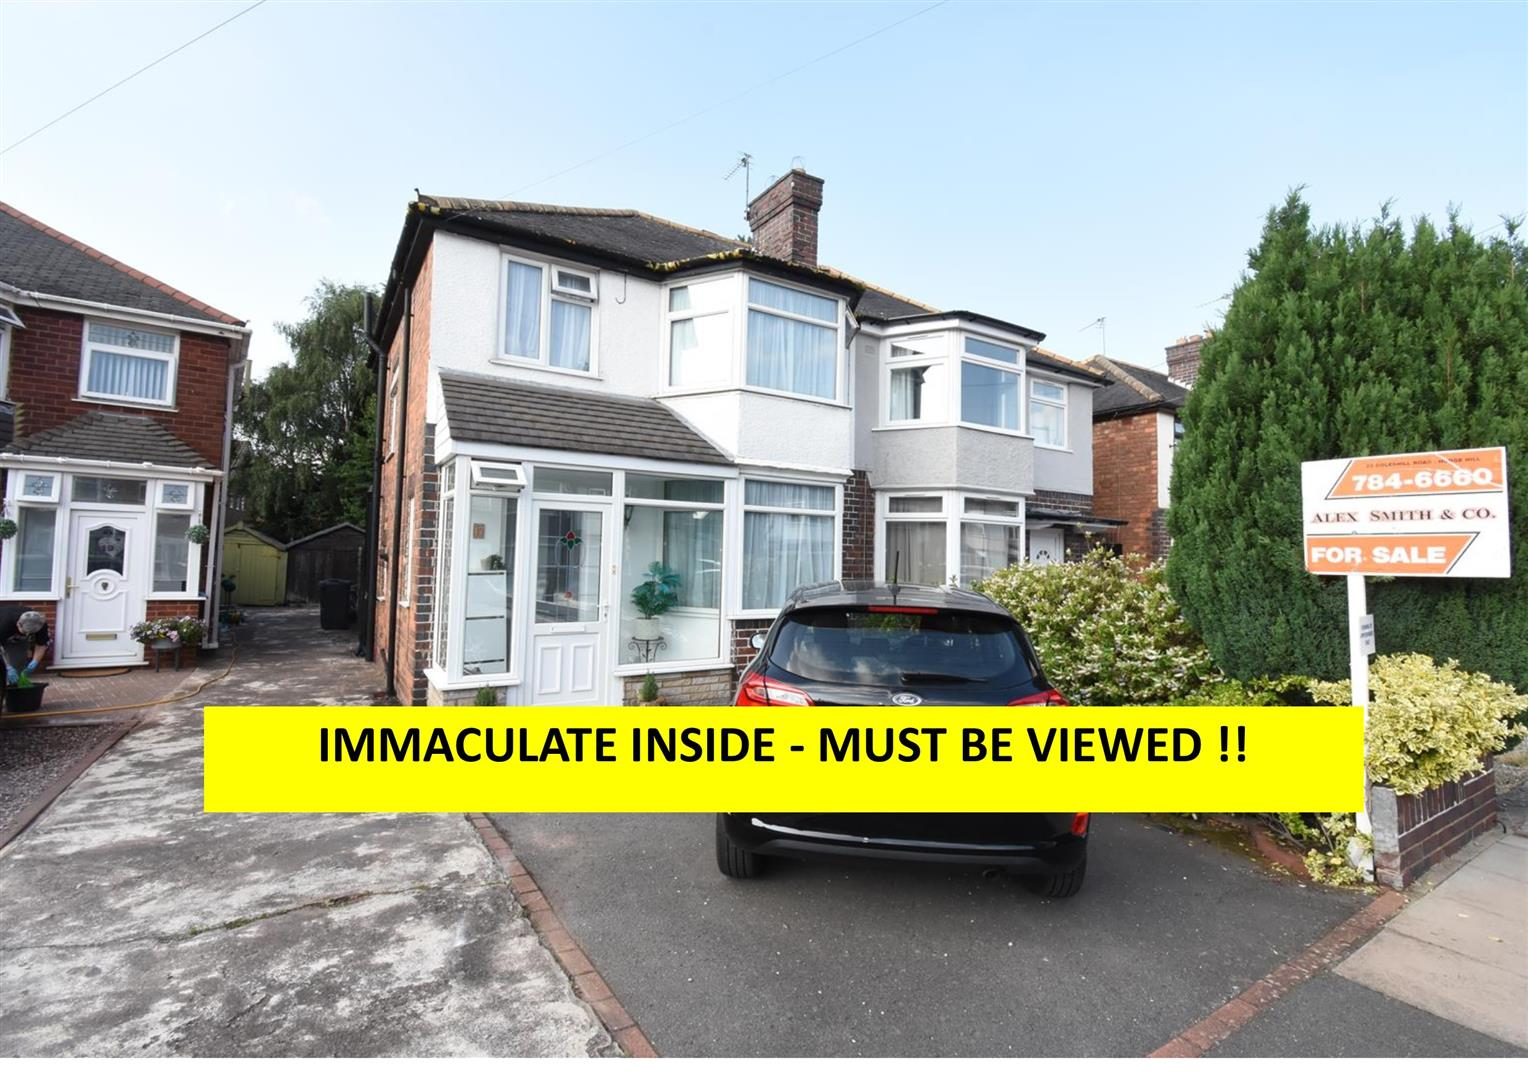 3 bed house for sale in Stow Grove, Castle Bromwich, Birmingham - Property Image 1